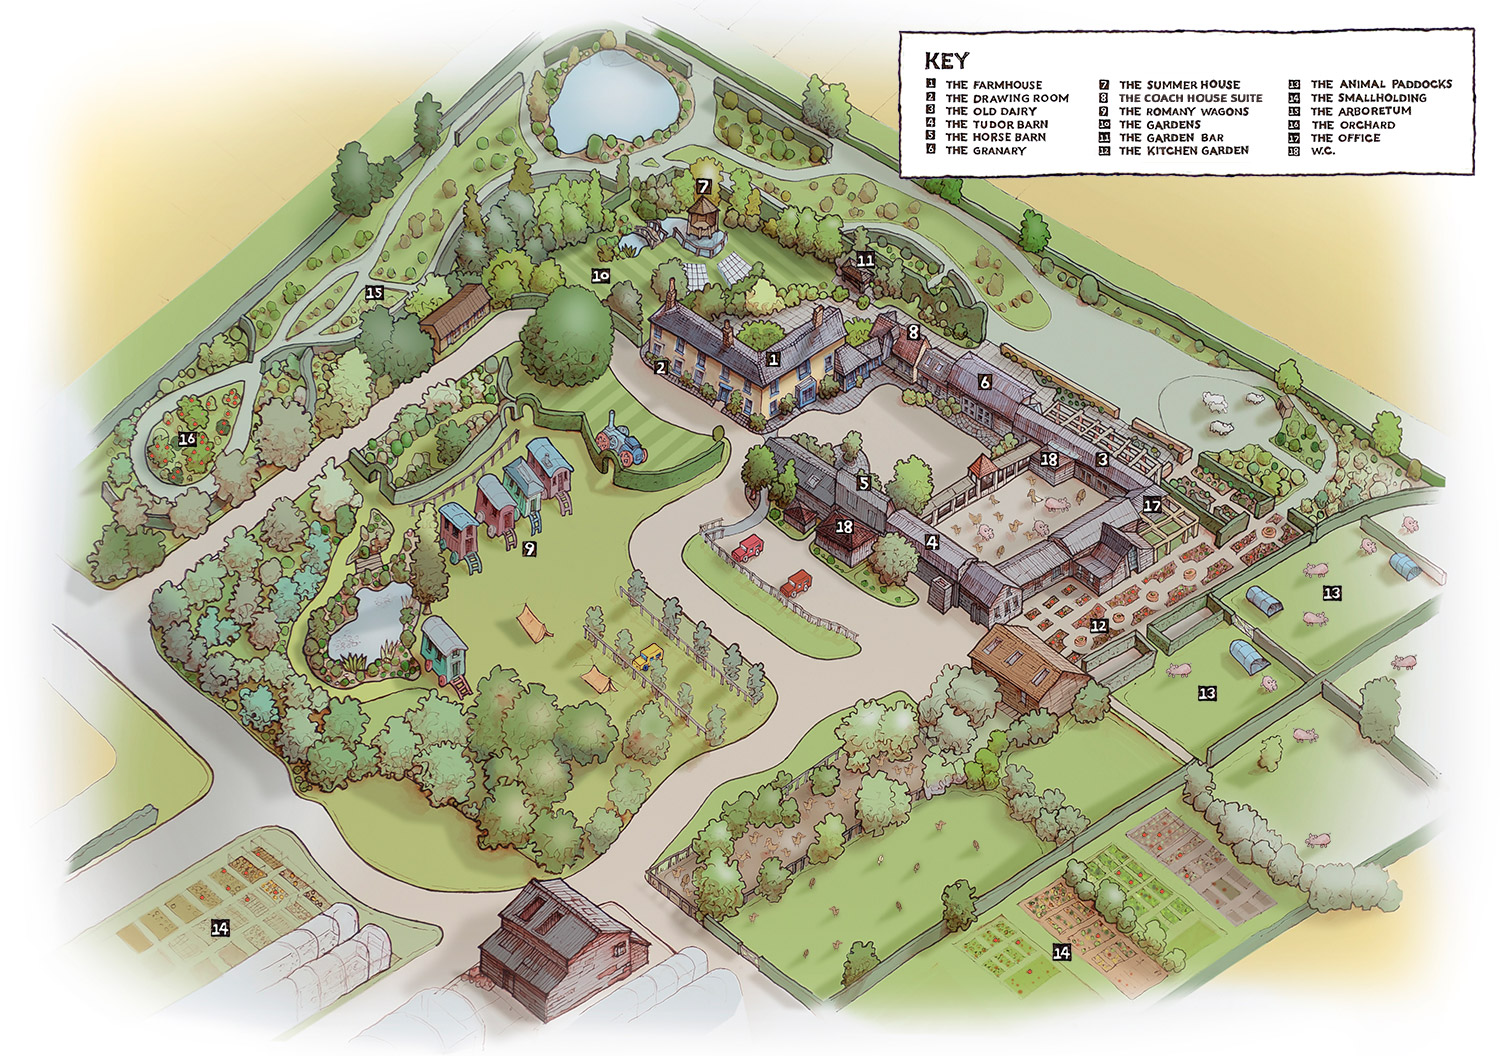 South Farm Illustrated Venue Map by Richard Bowring